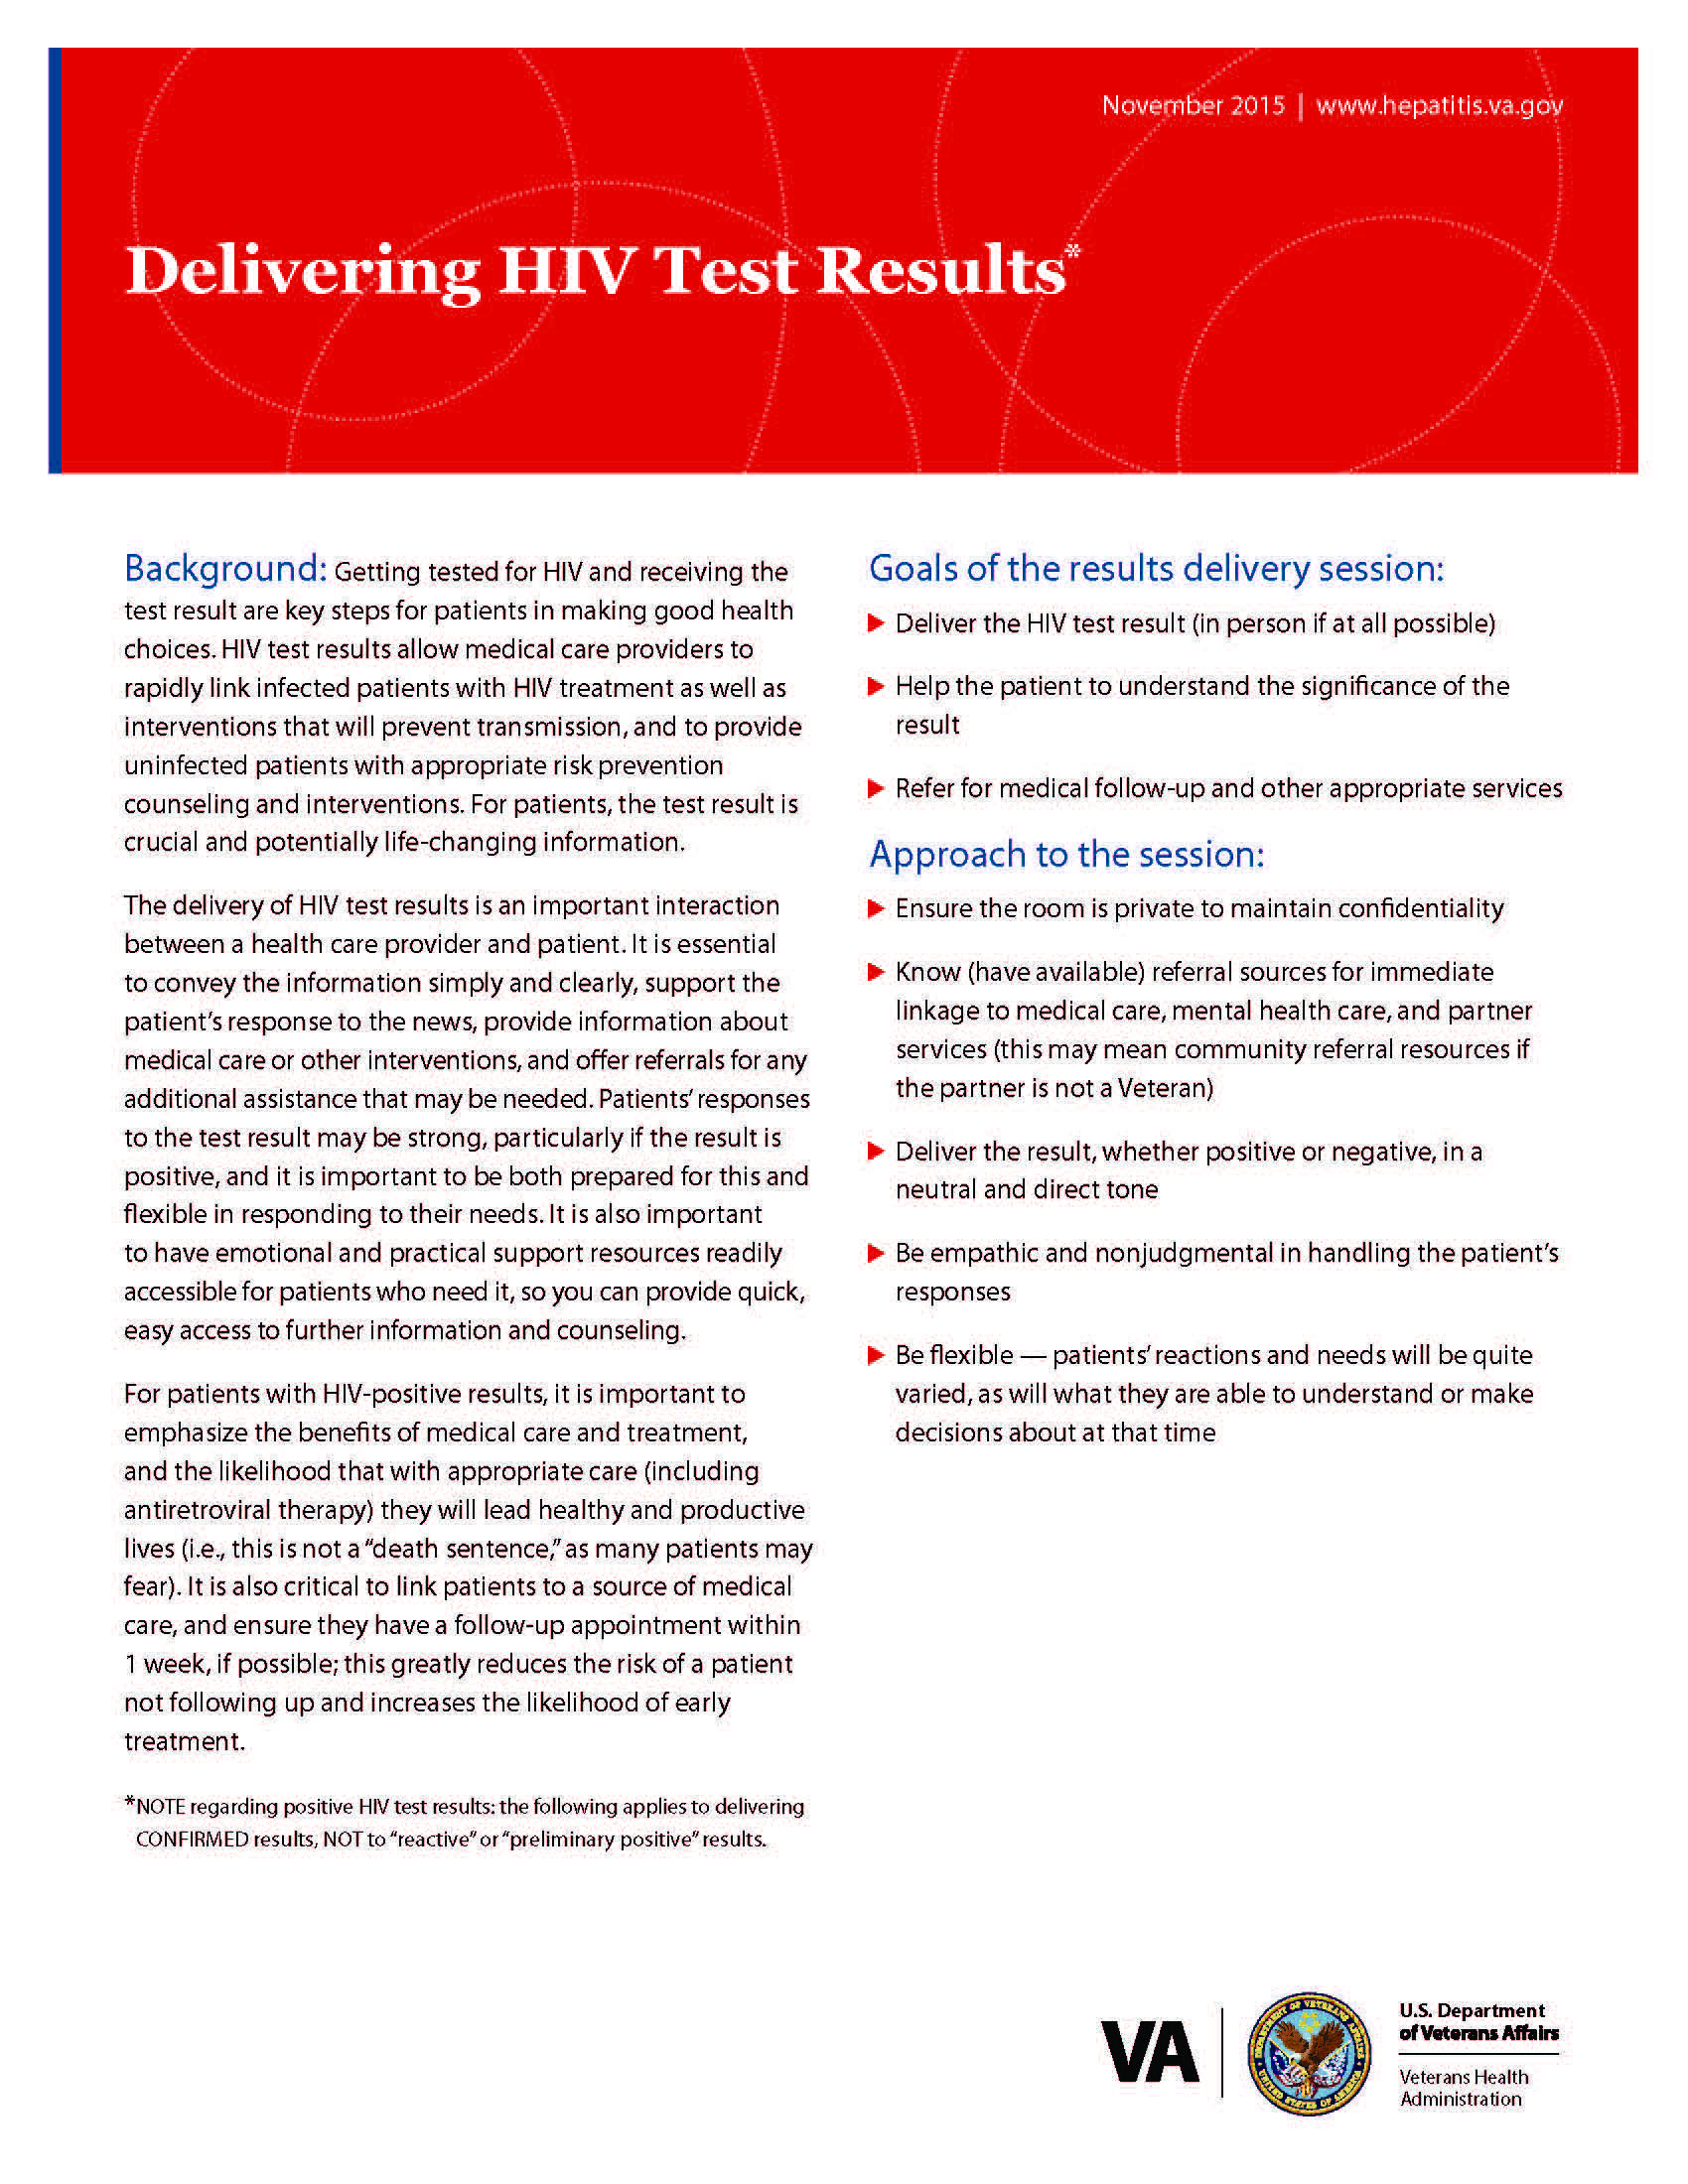 Delivering HIV Test Results